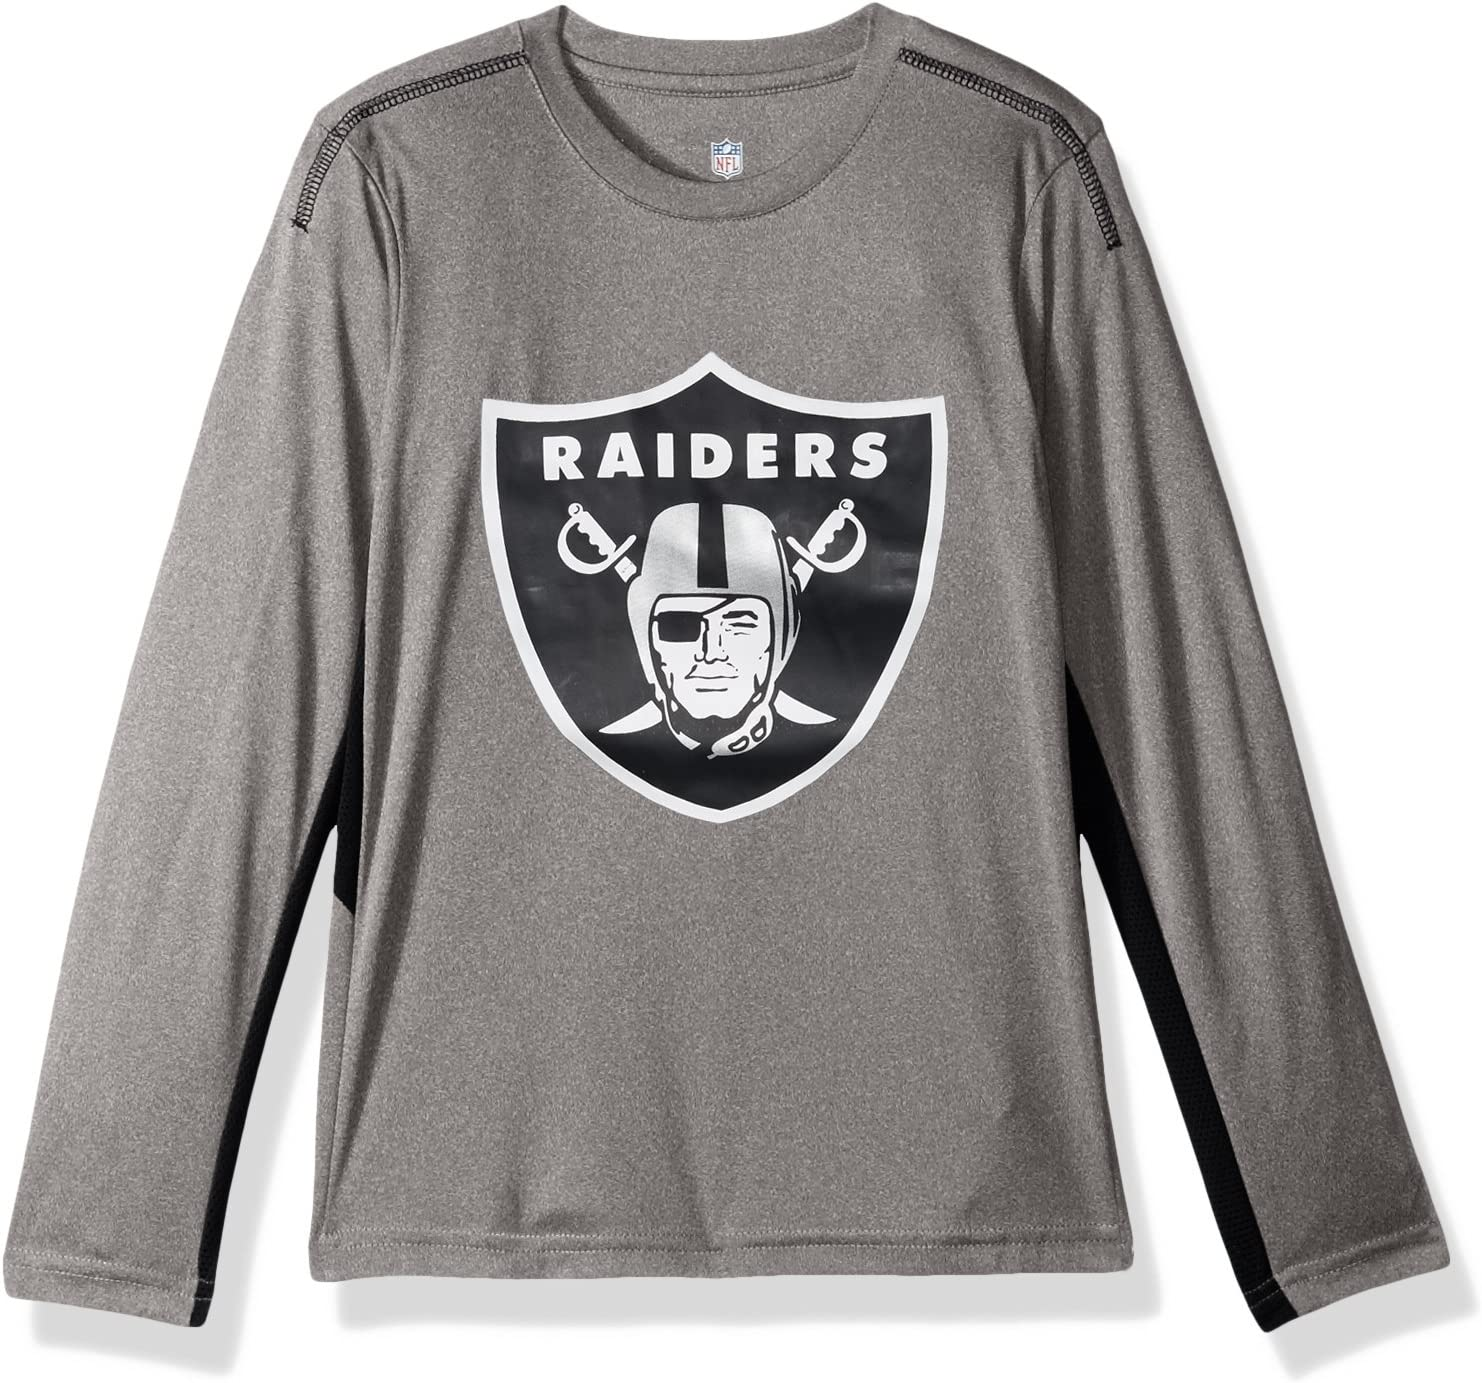 Outerstuff NFL Teen-Boys NFL Kids & Youth Boys Mainframe Long Sleeve Performance Tee : Clothing